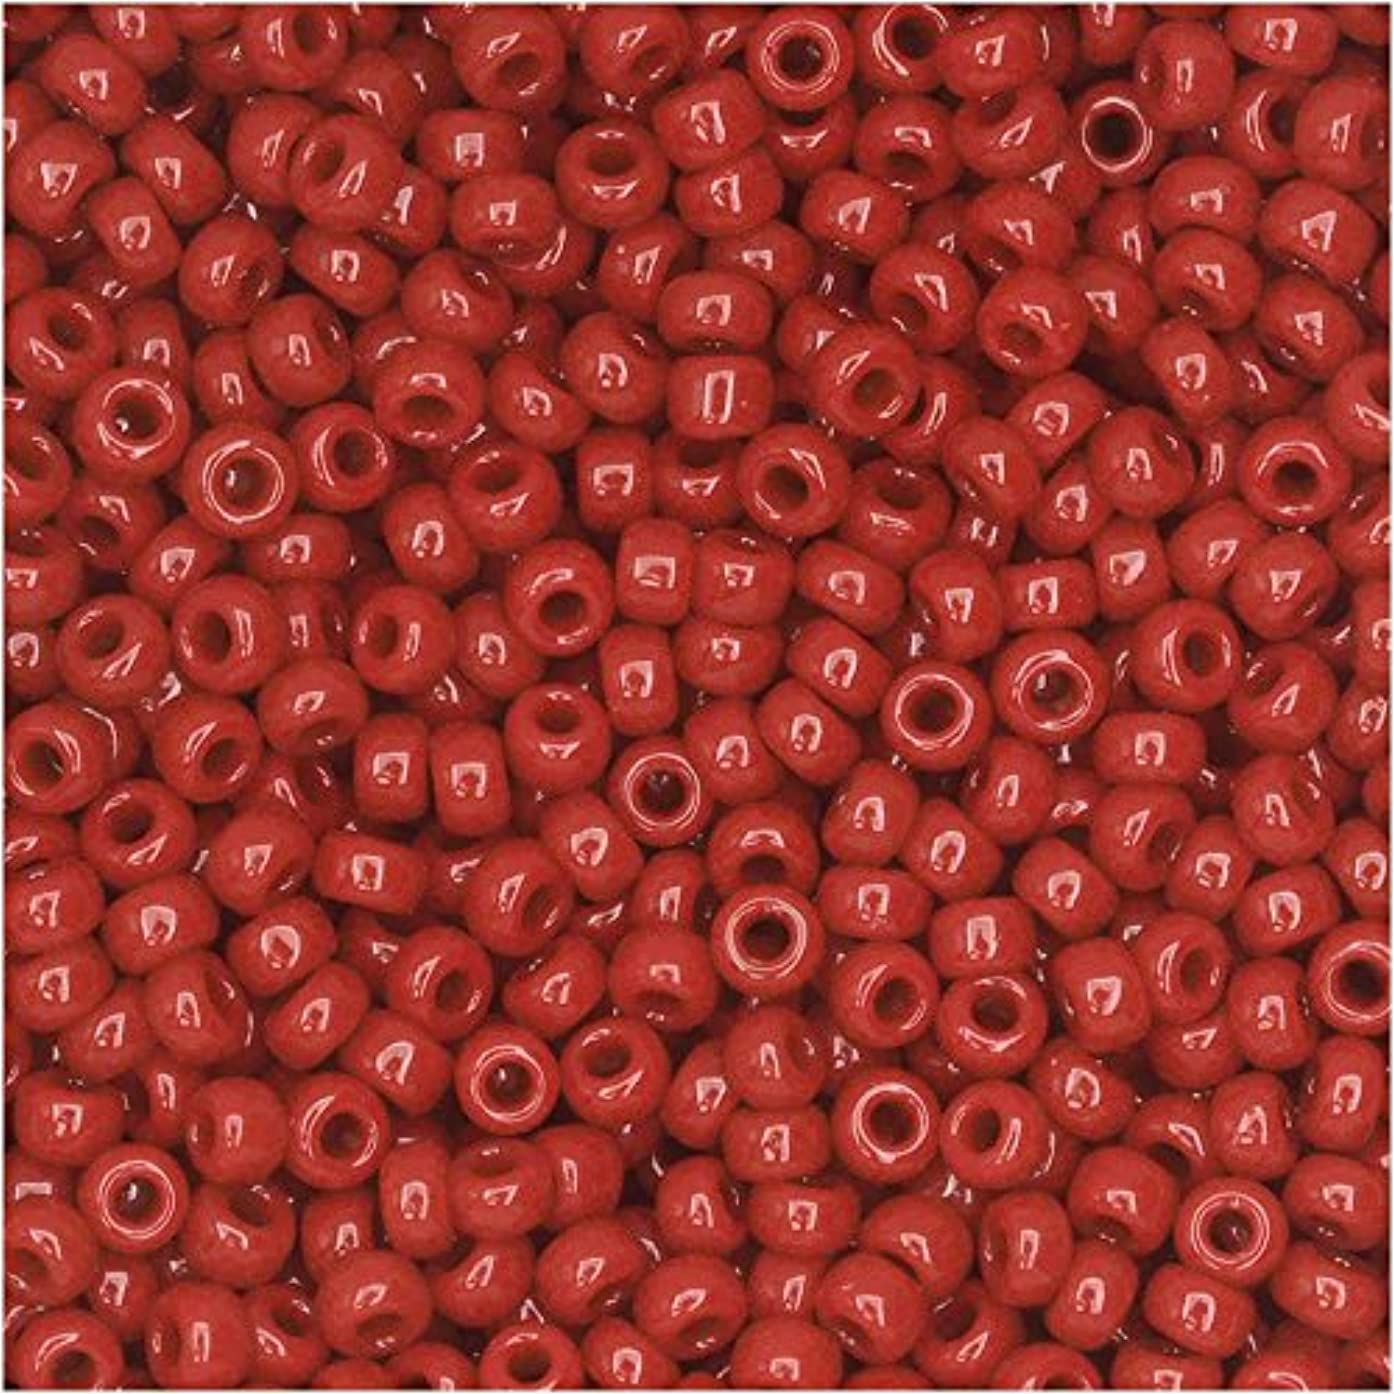 Maroon Red Opaque Miyuki Japanese round rocailles glass seed beads 11/0 Approximately 24 gram 5 inch tube